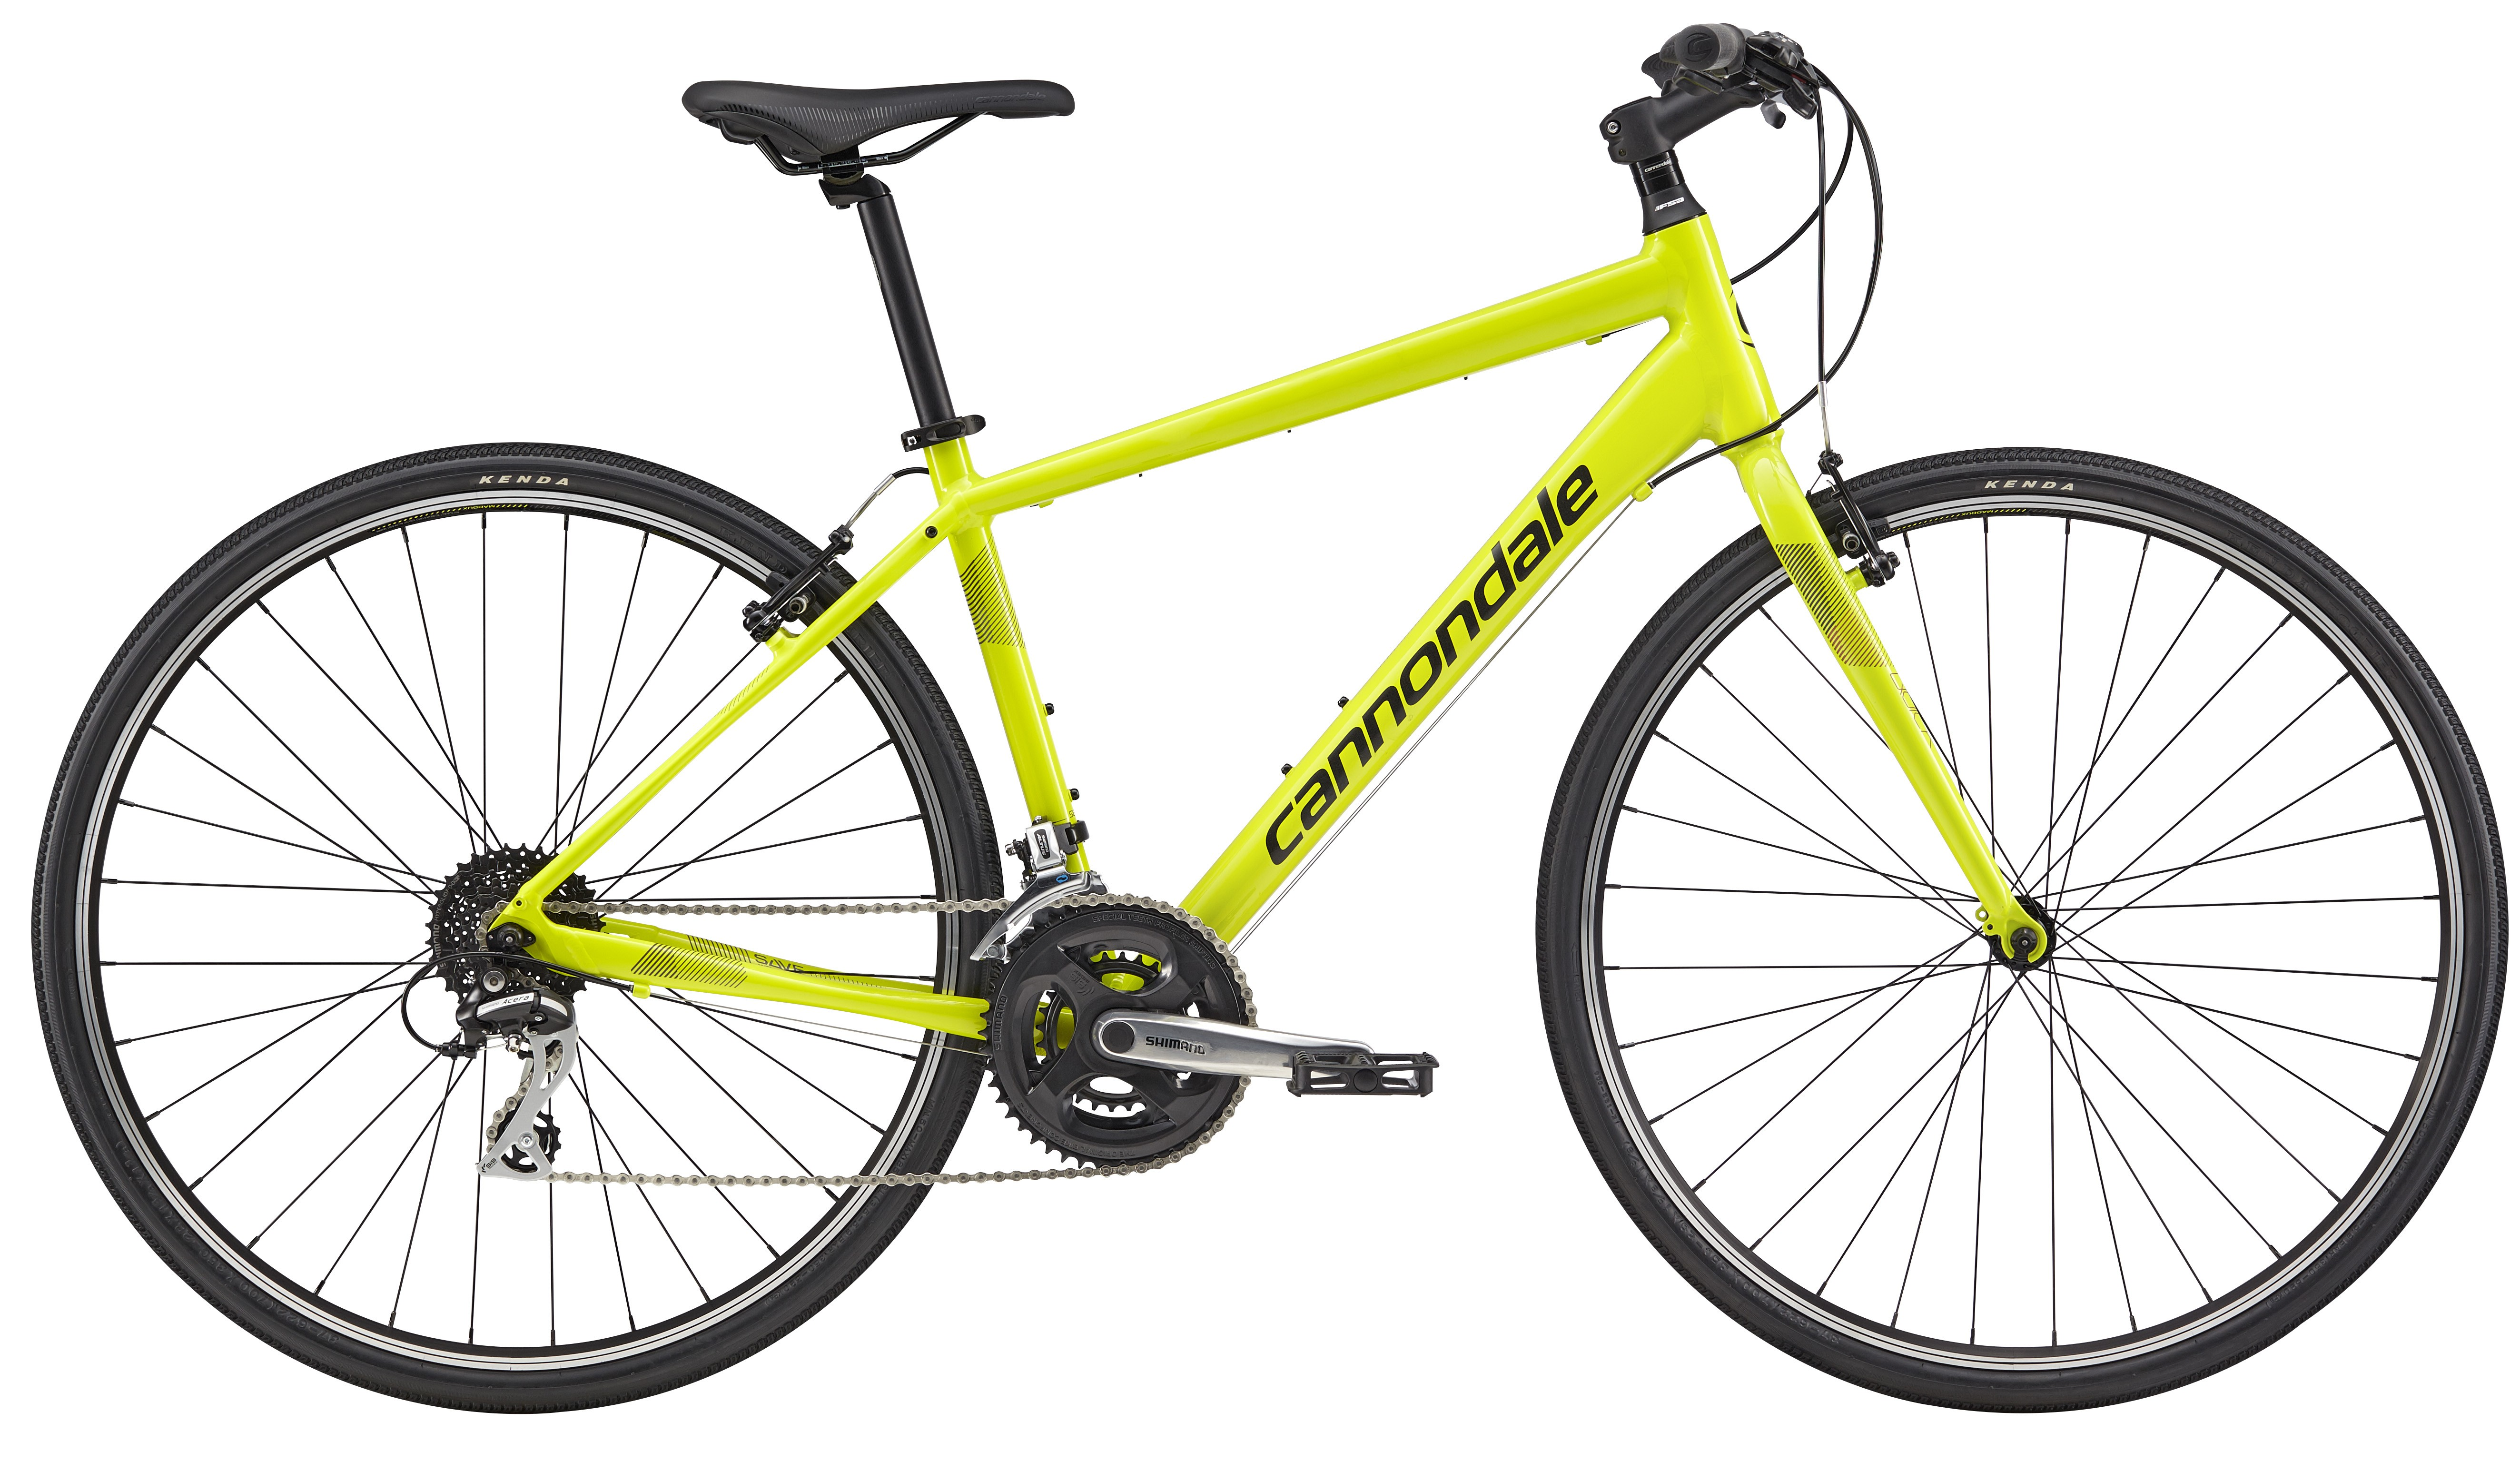 2017 Cannondale Quick 7 Neon Spring/Black Fitness Hybrid